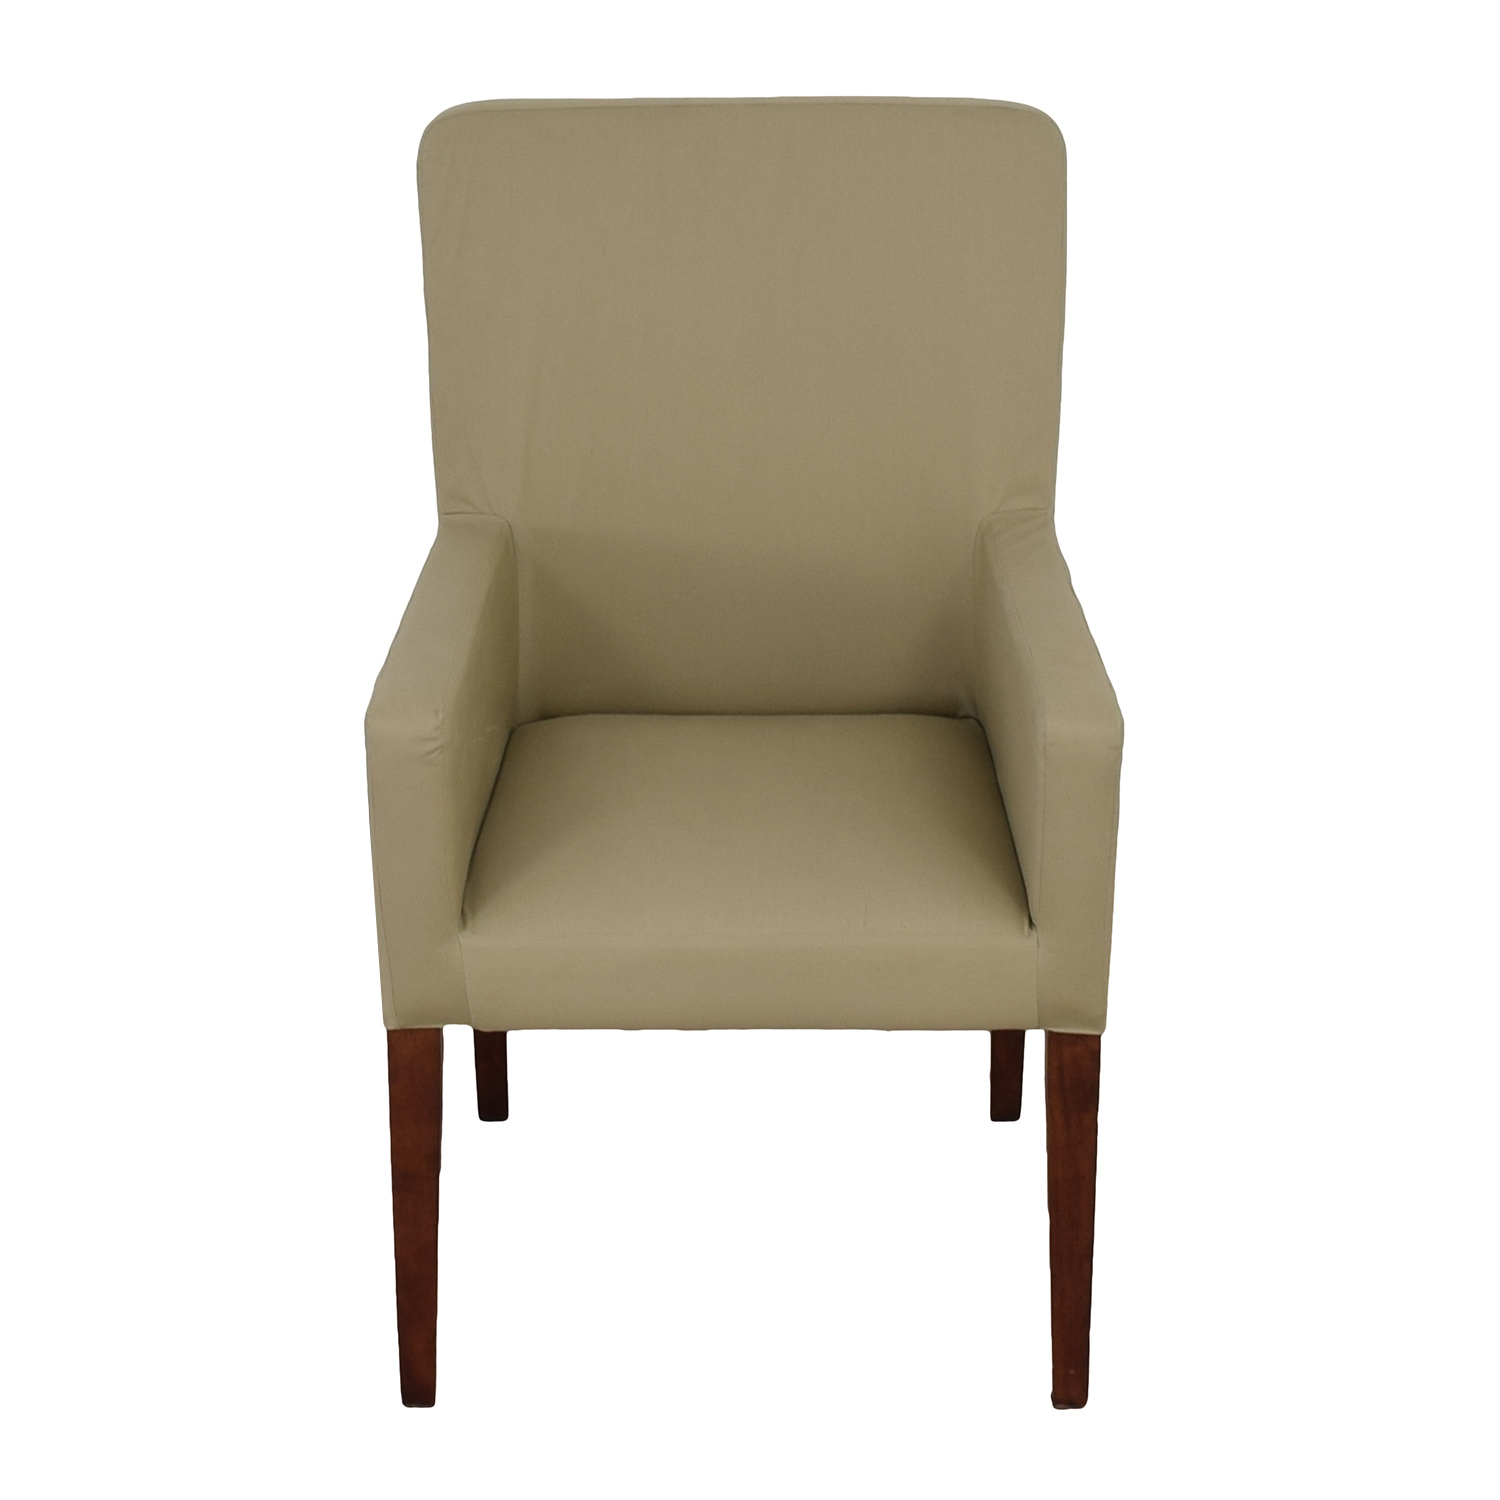 90 off pottery barn pottery barn megan beige accent chair chairs. Black Bedroom Furniture Sets. Home Design Ideas